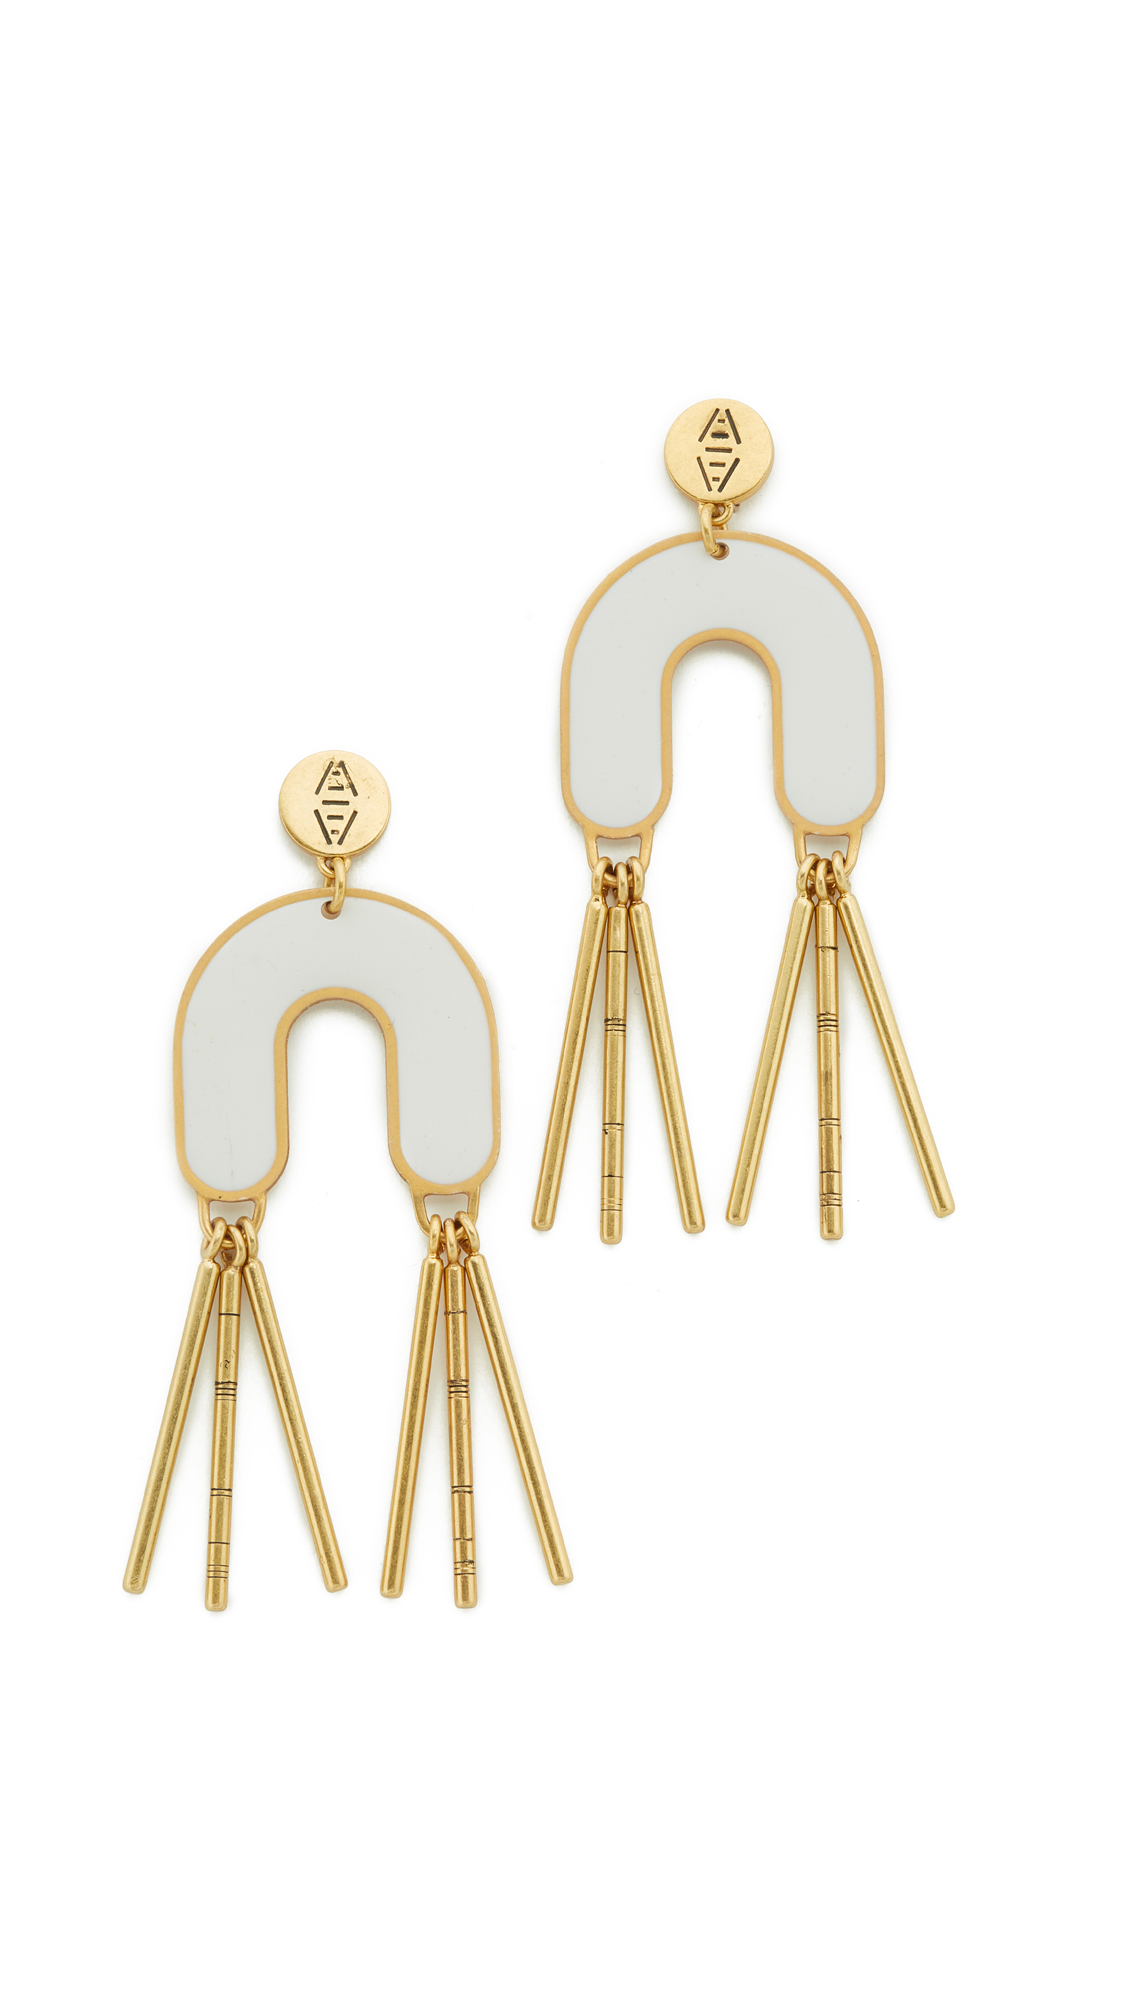 Madewell Enamel Fringe Earrings - White